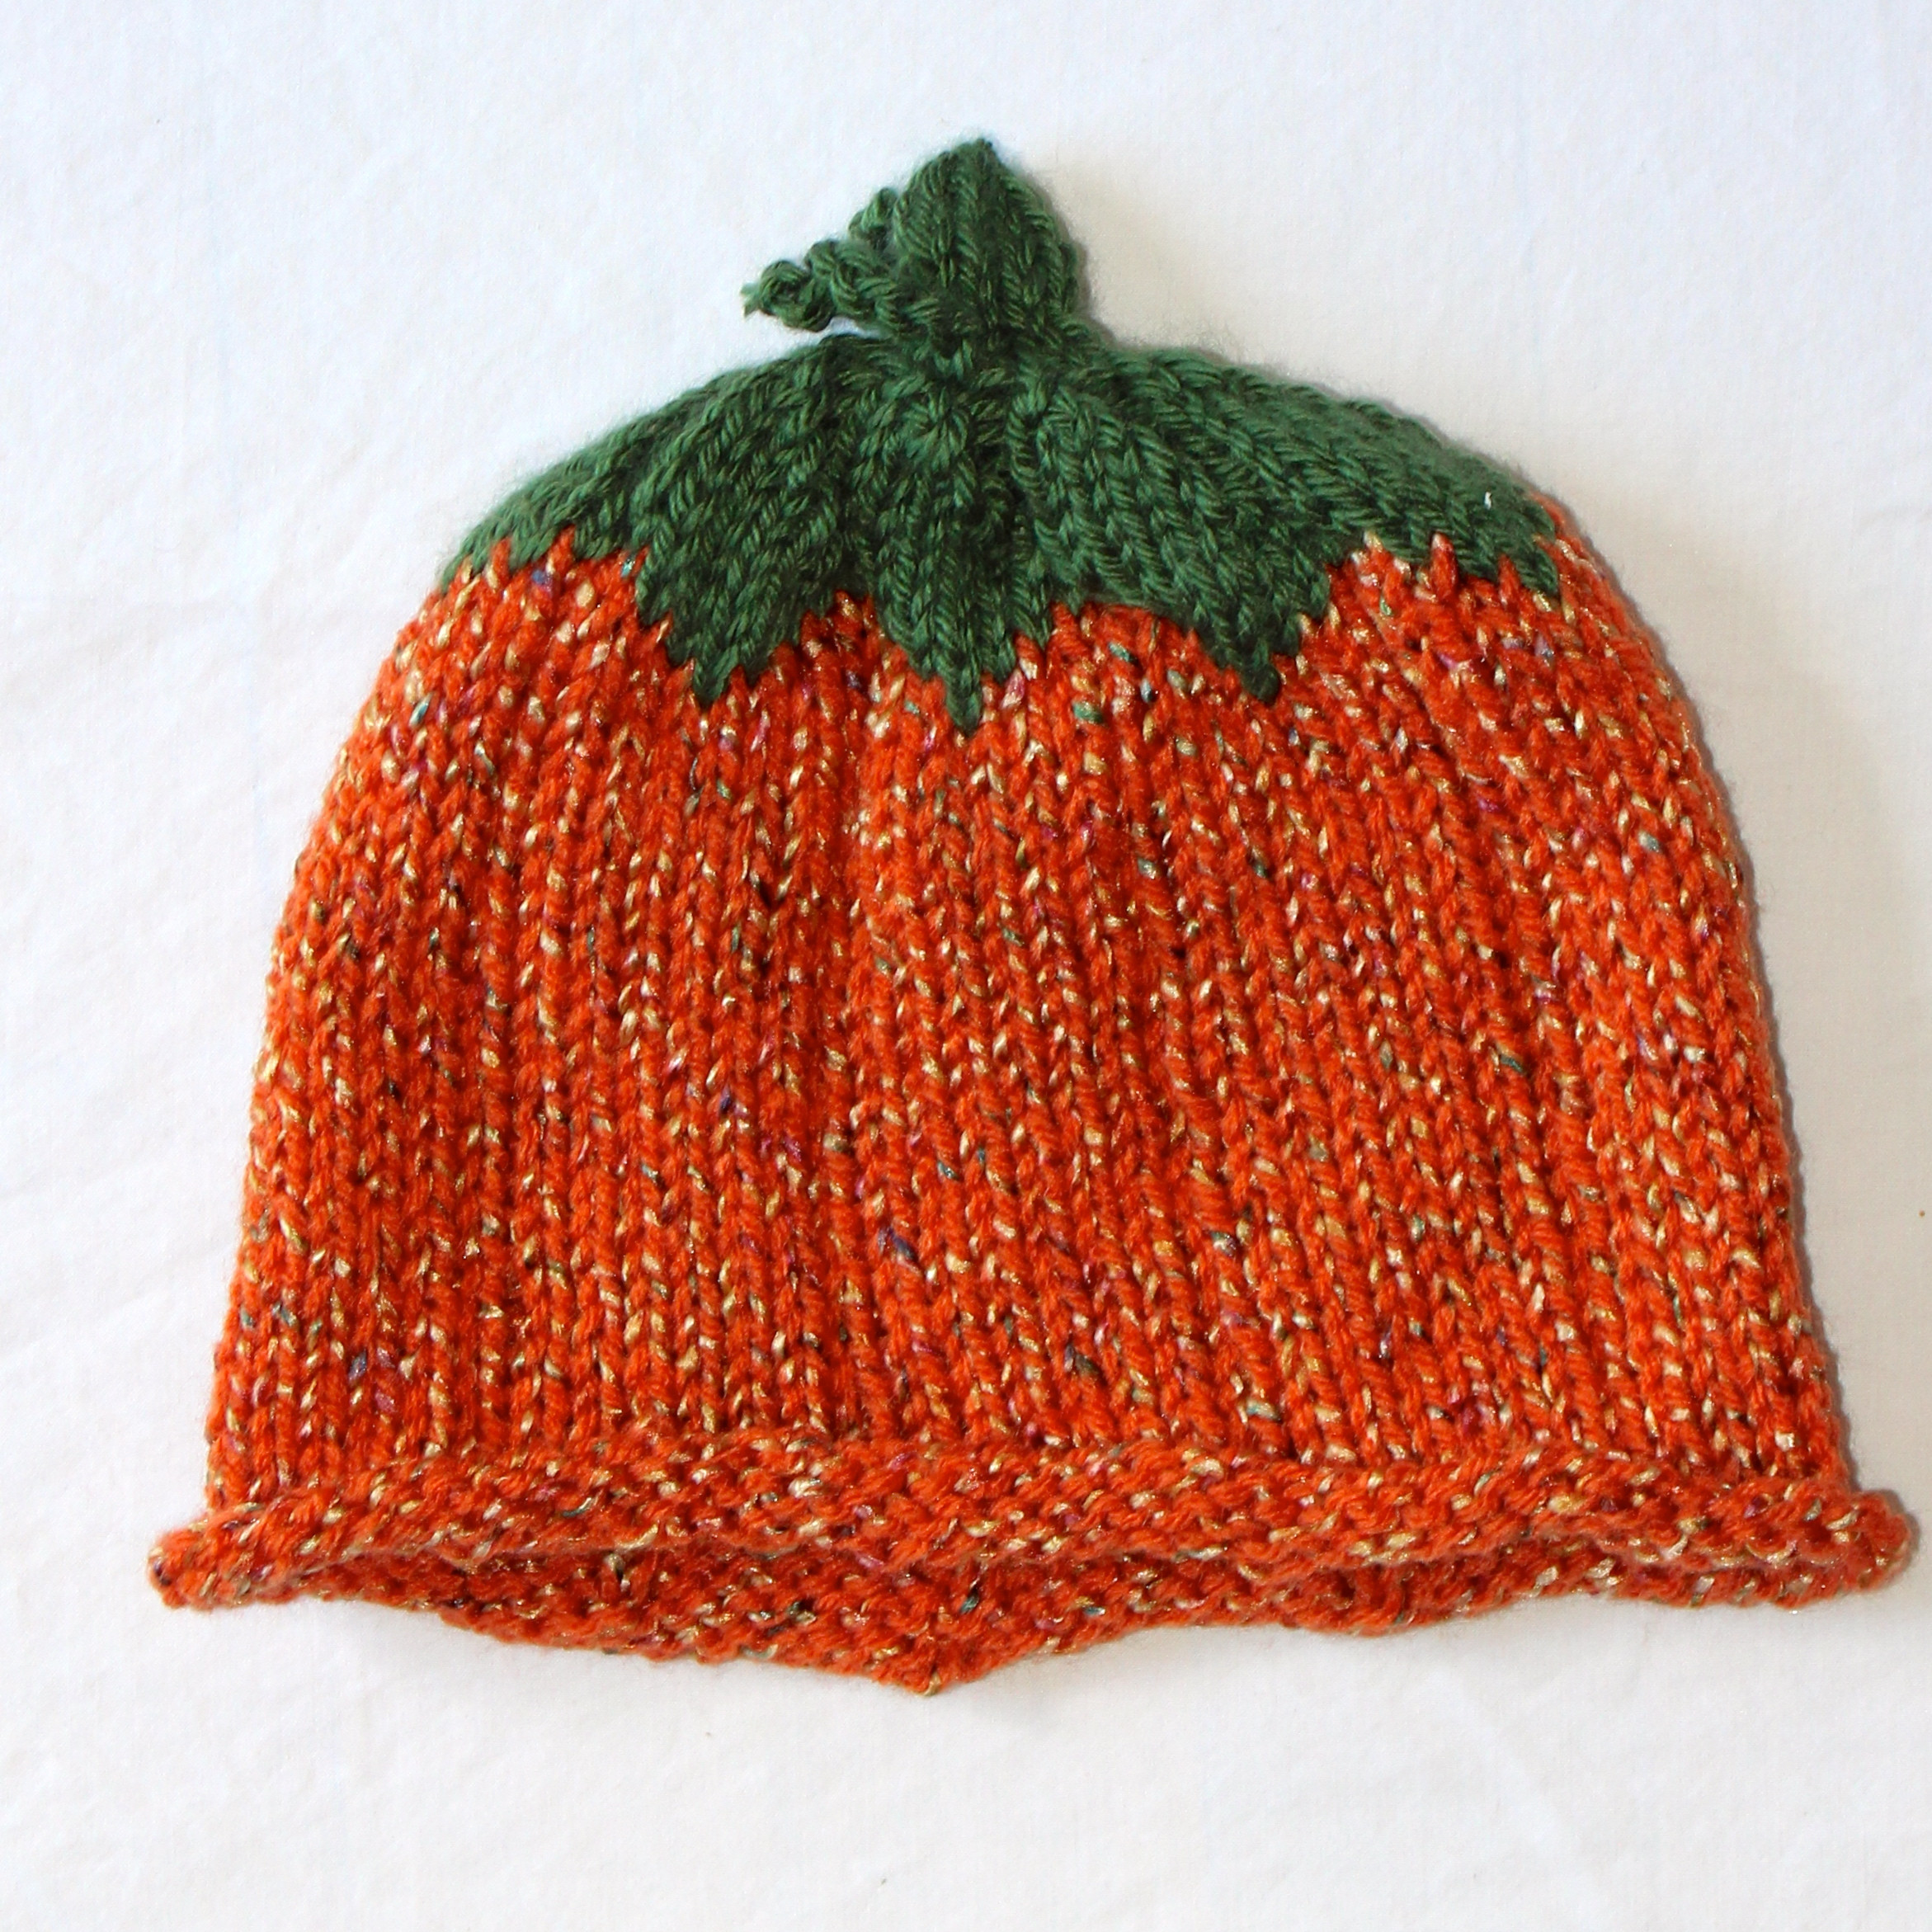 Knit Speckled Pumpkin Hat